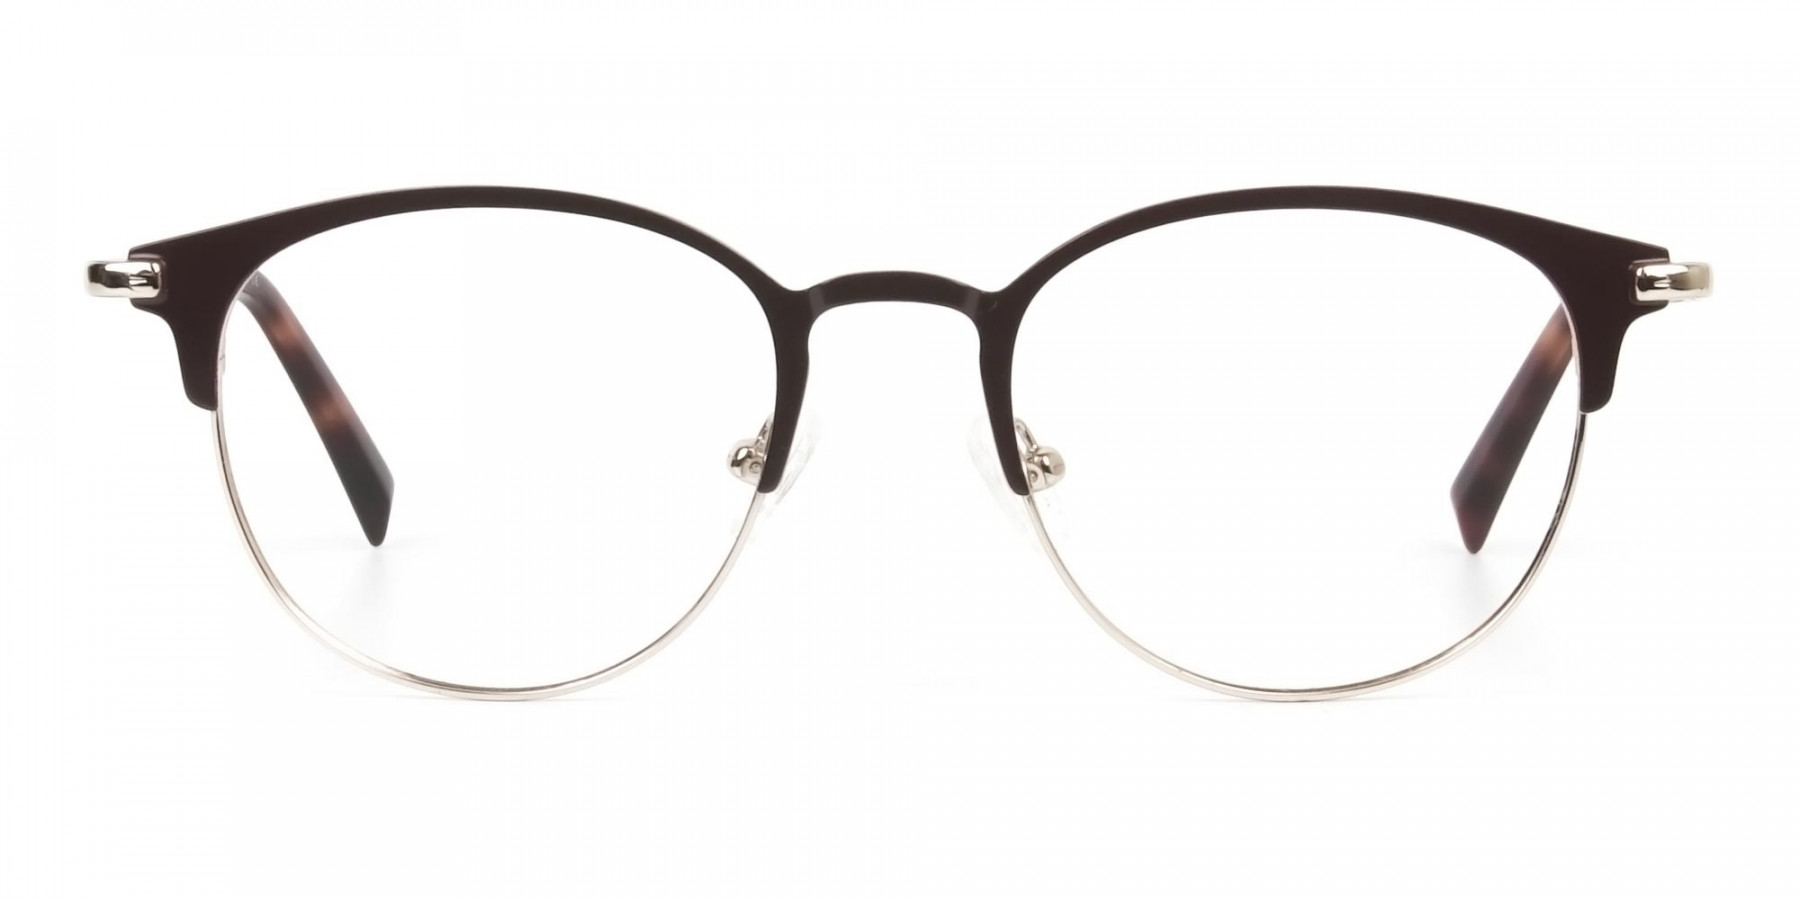 Brown & Gold Keyhole Browline Glasses in Round - 1